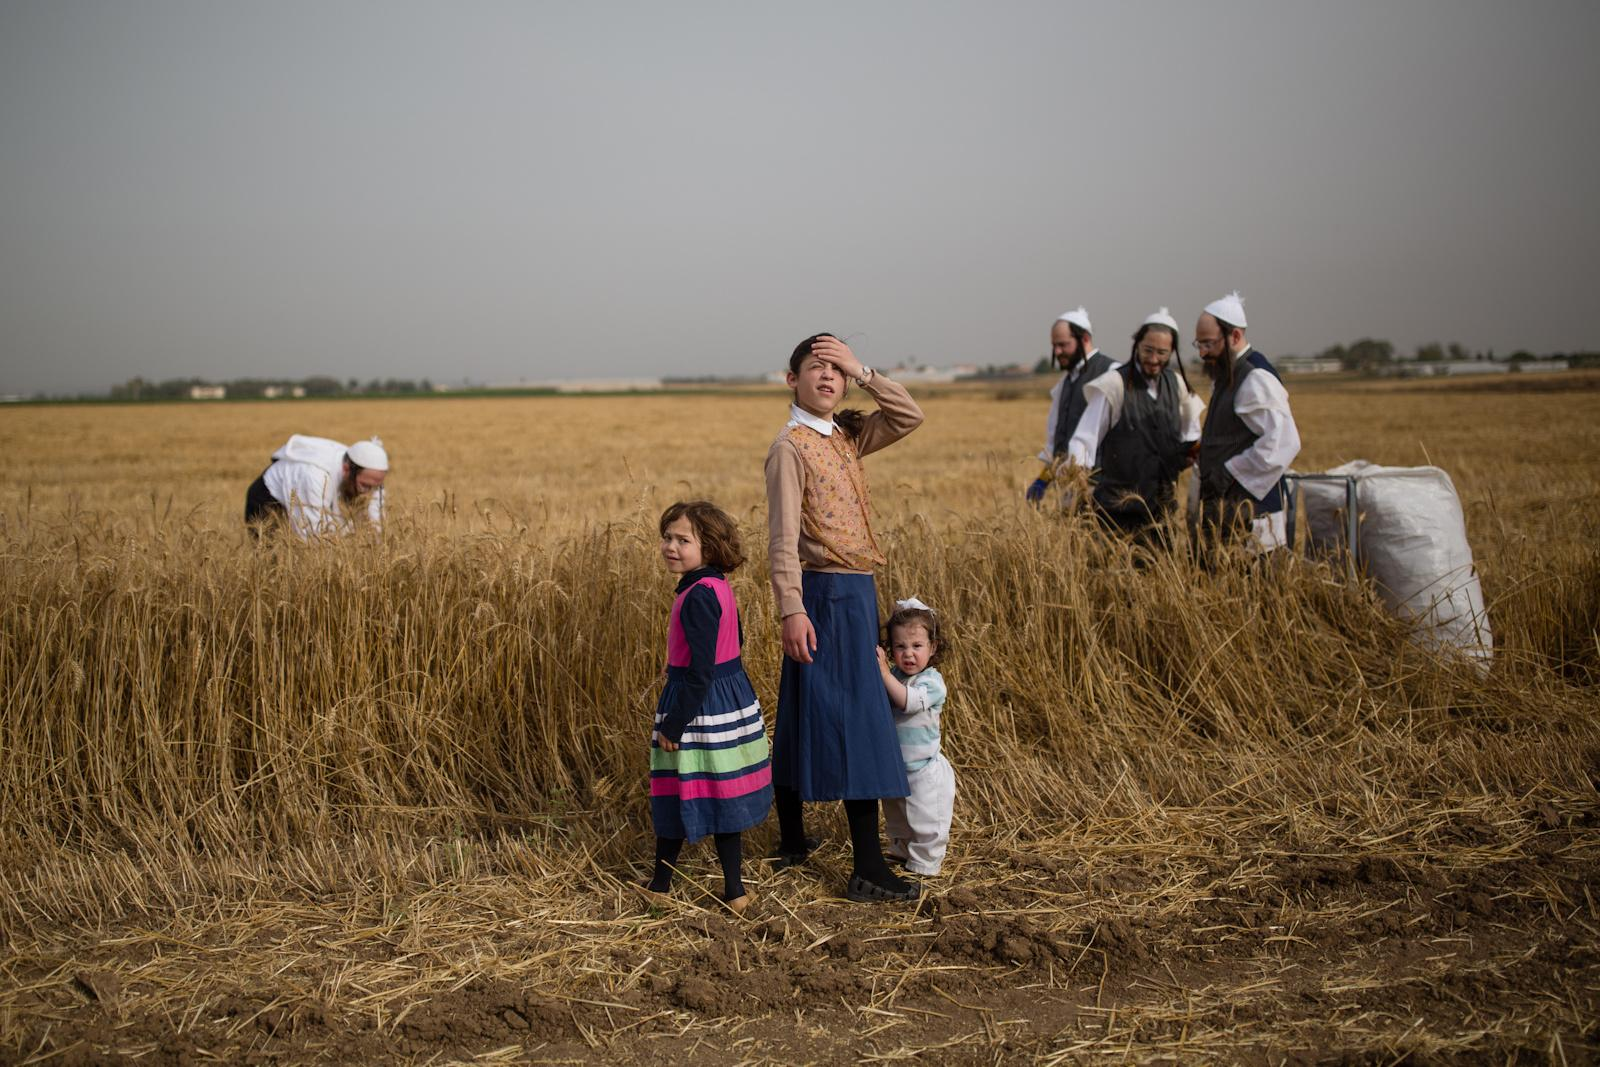 KOMEMIYUT, ISRAEL - MAY 03, 2016: Ultra-Orthodox Jews follow an ancient Biblical command by harvesting wheat at a field in the Ultra-orthodox moshav of Komemiyut, May 3, 2016, They will store the wheat for almost a year and then use it to grind flour to make unleavened bread for the week-long Passover festival.